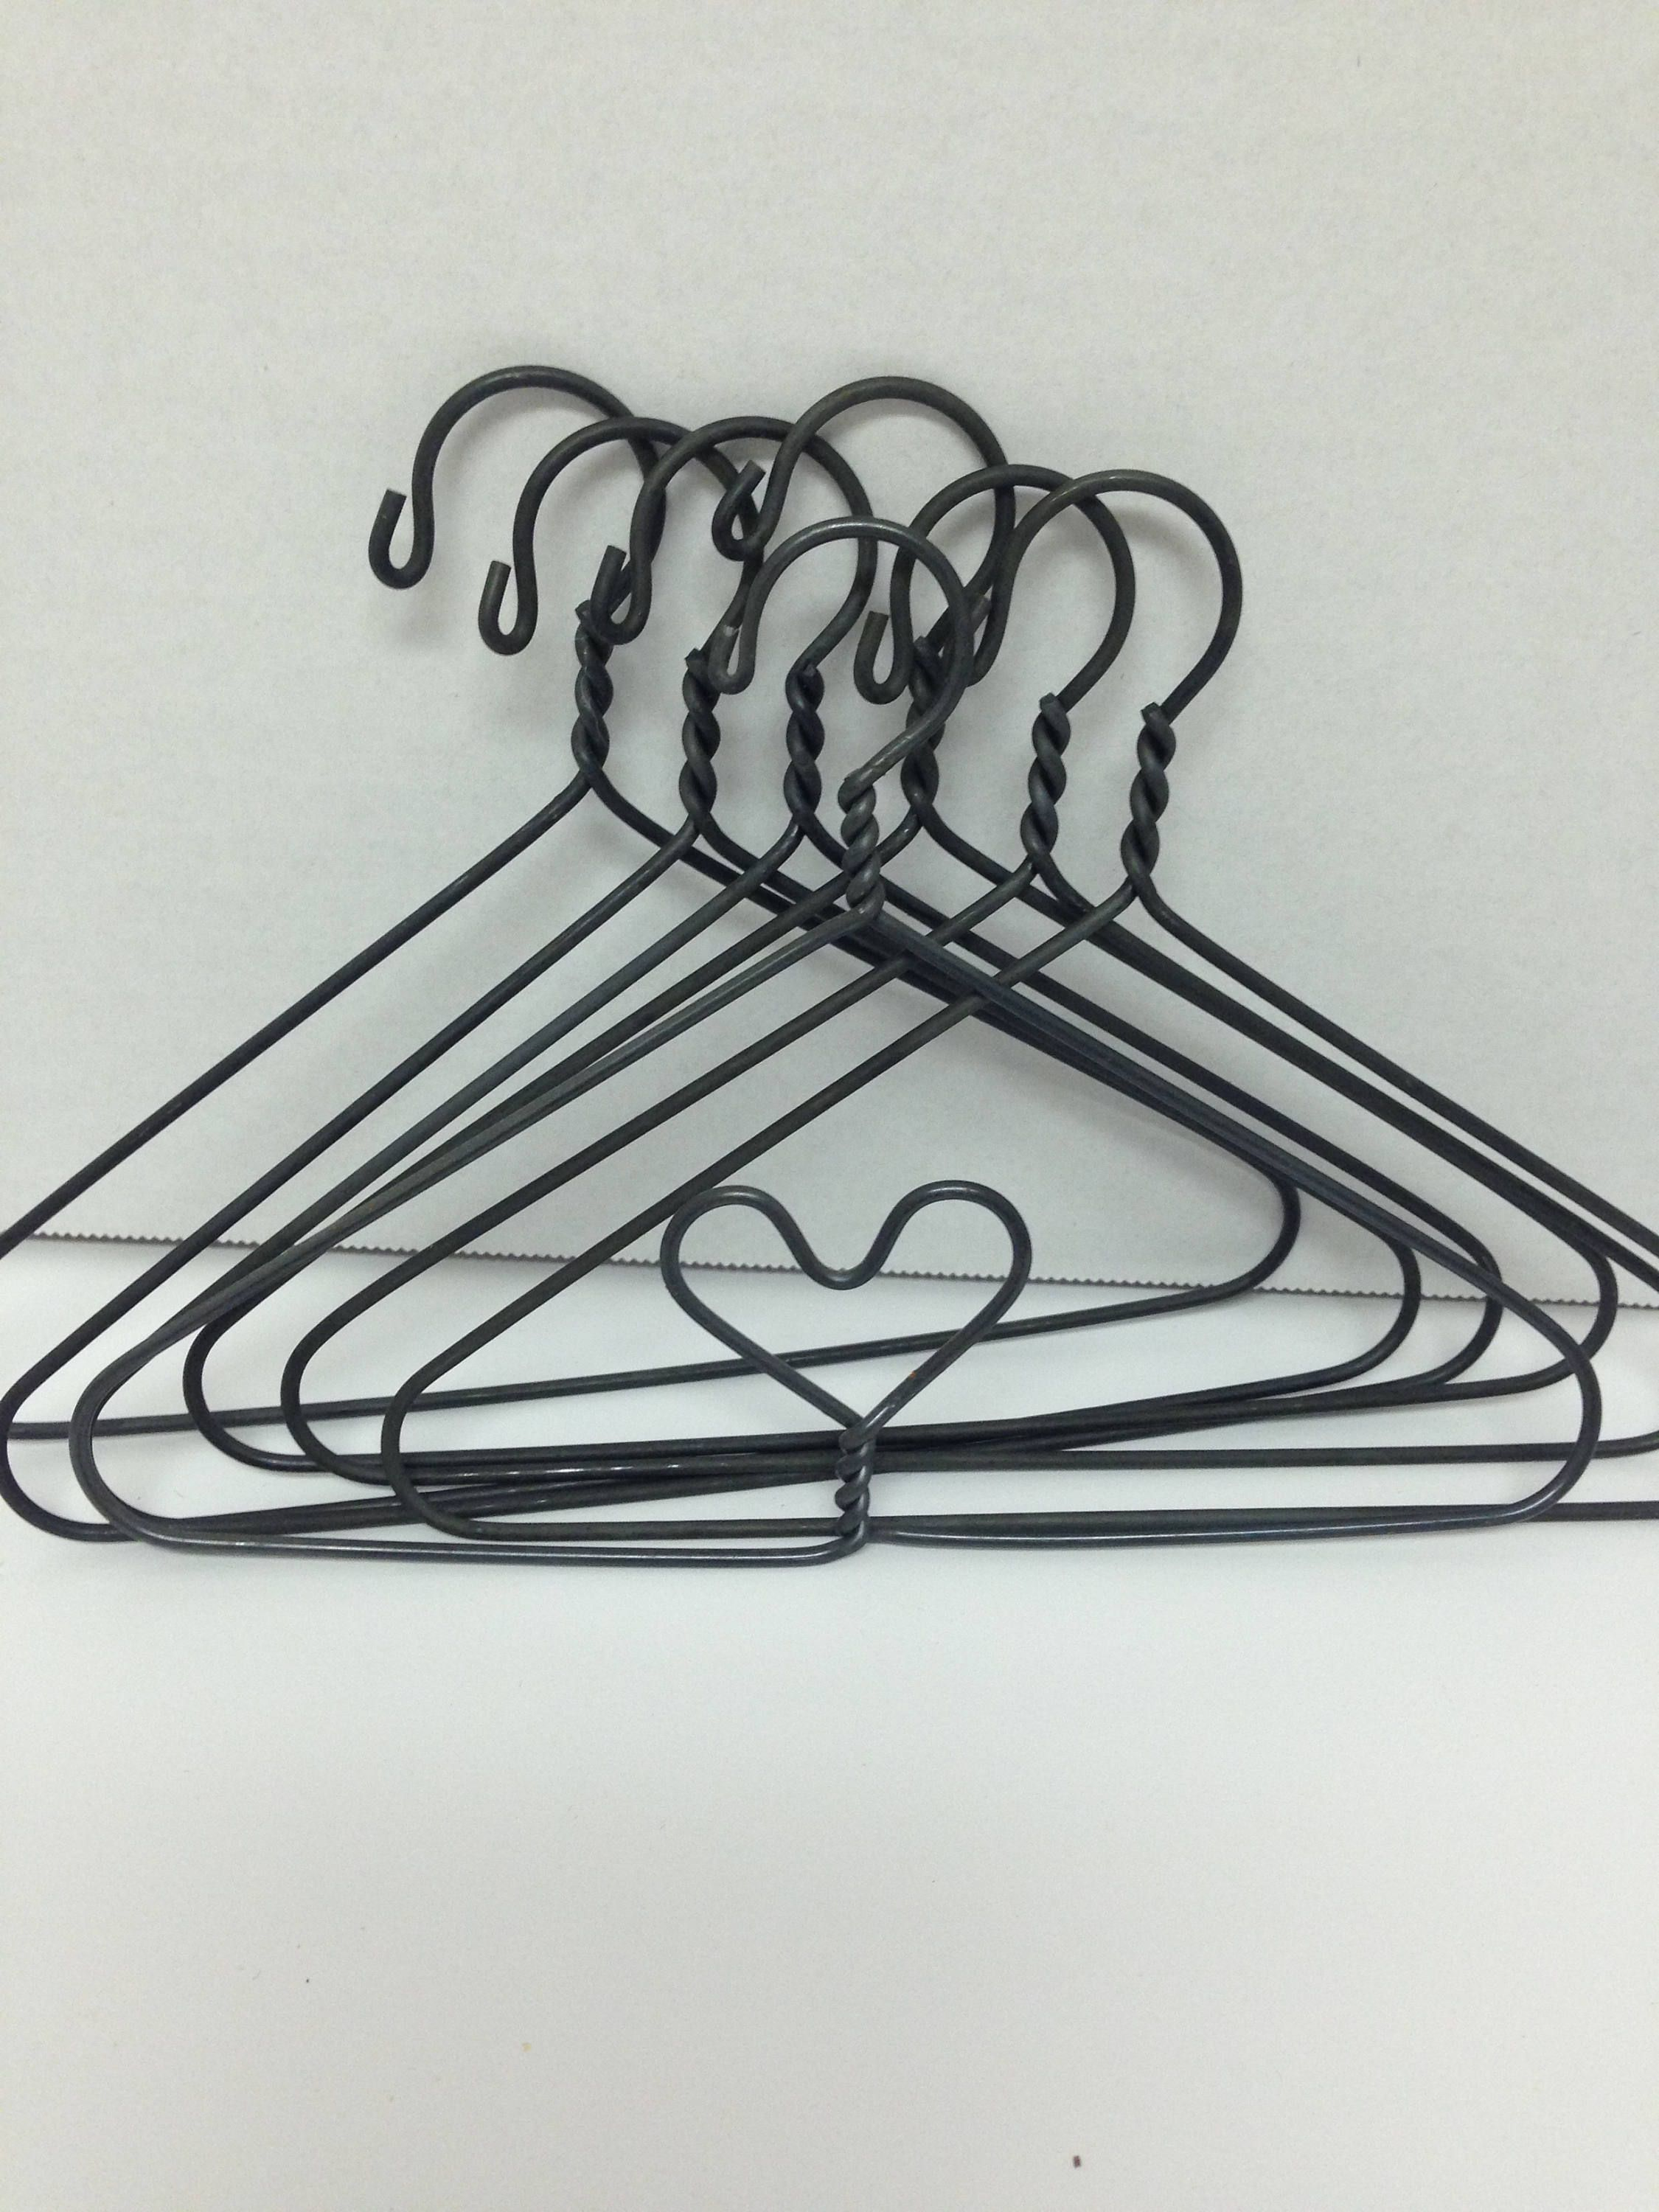 Pin by Sharon B on Supplies to Create   Pinterest   Clothes hanger ...